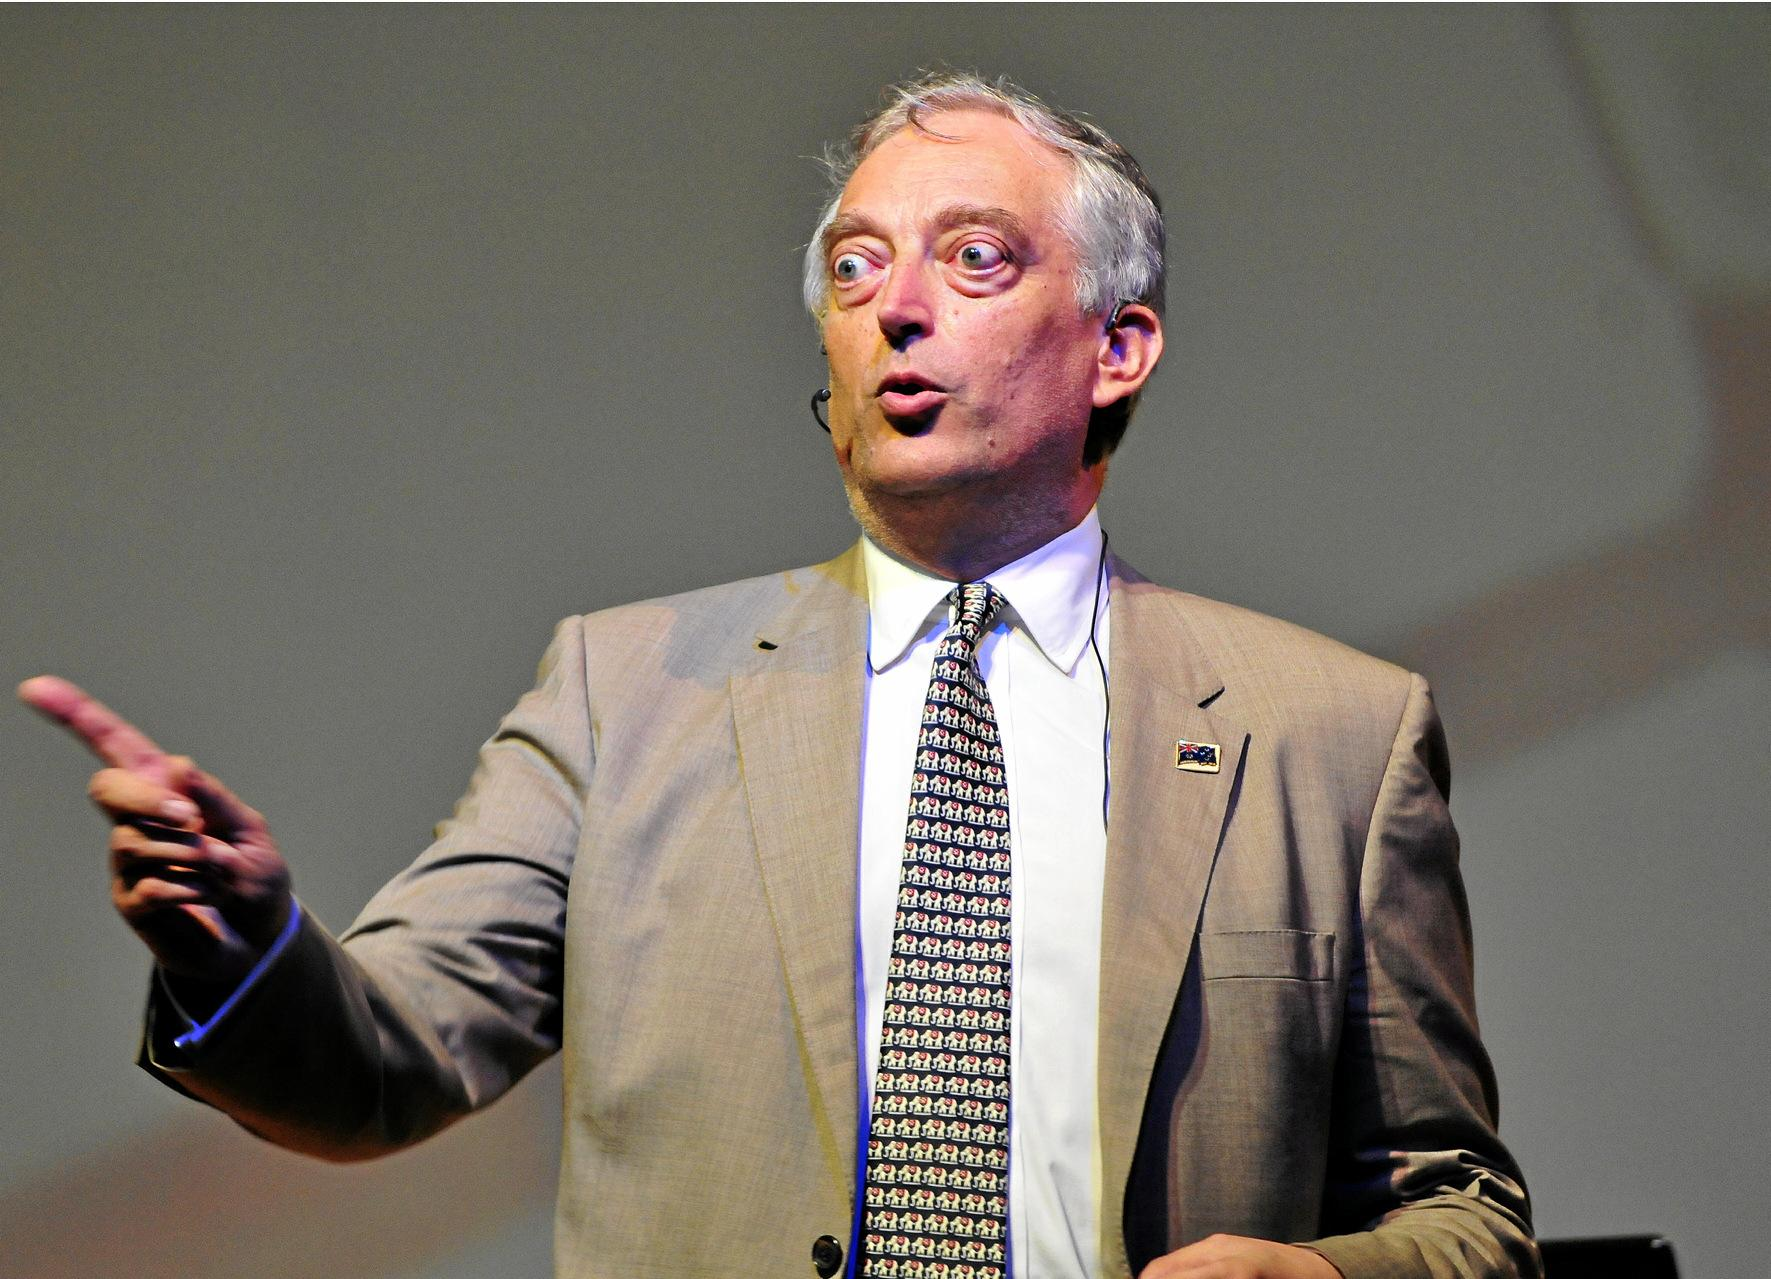 Lord Monckton at Noosa. Photo Geoff Potter / Noosa News